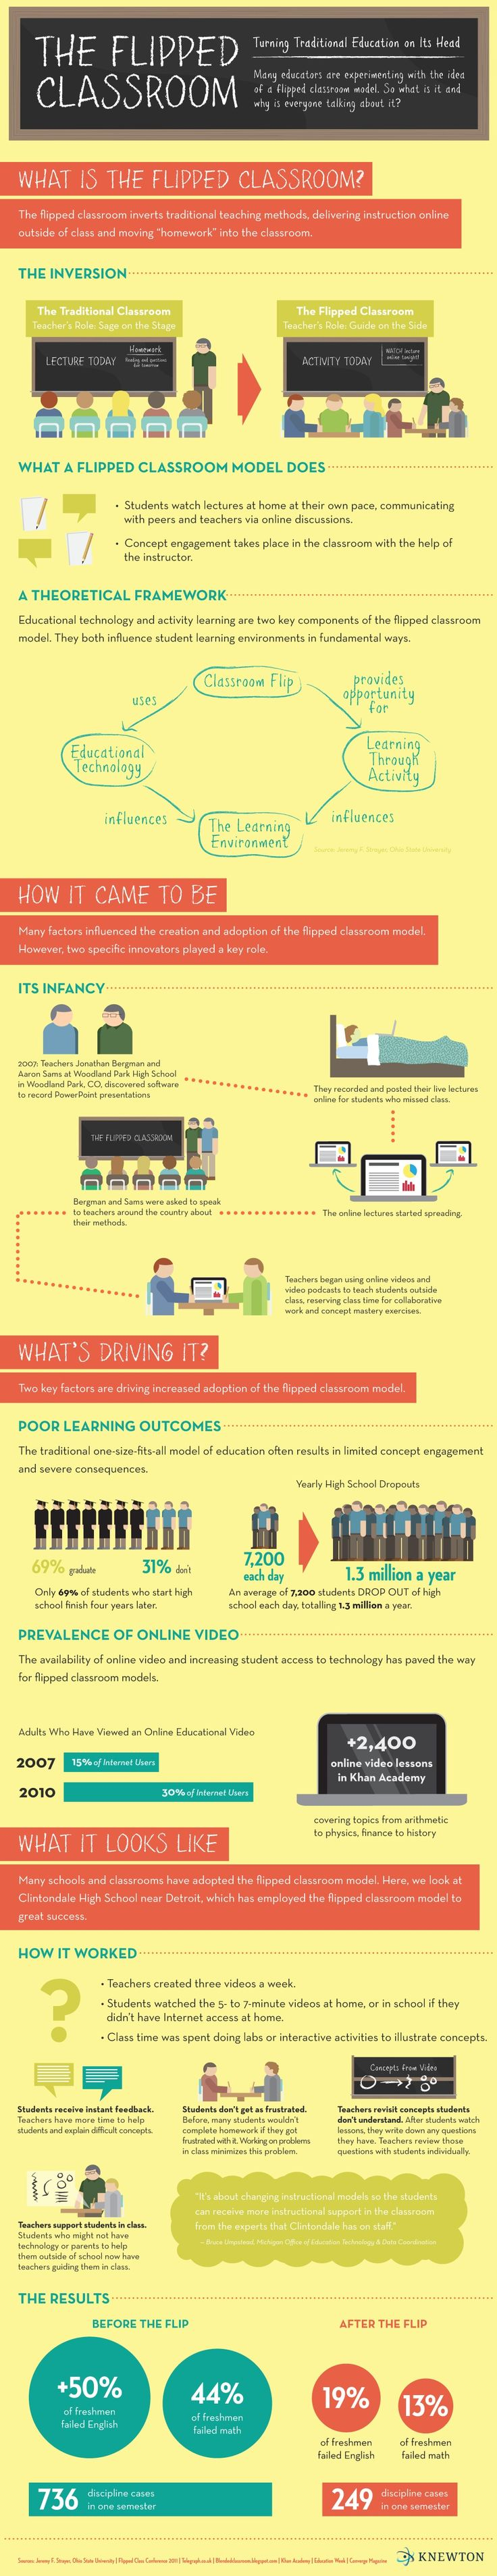 flipped classrm infographic